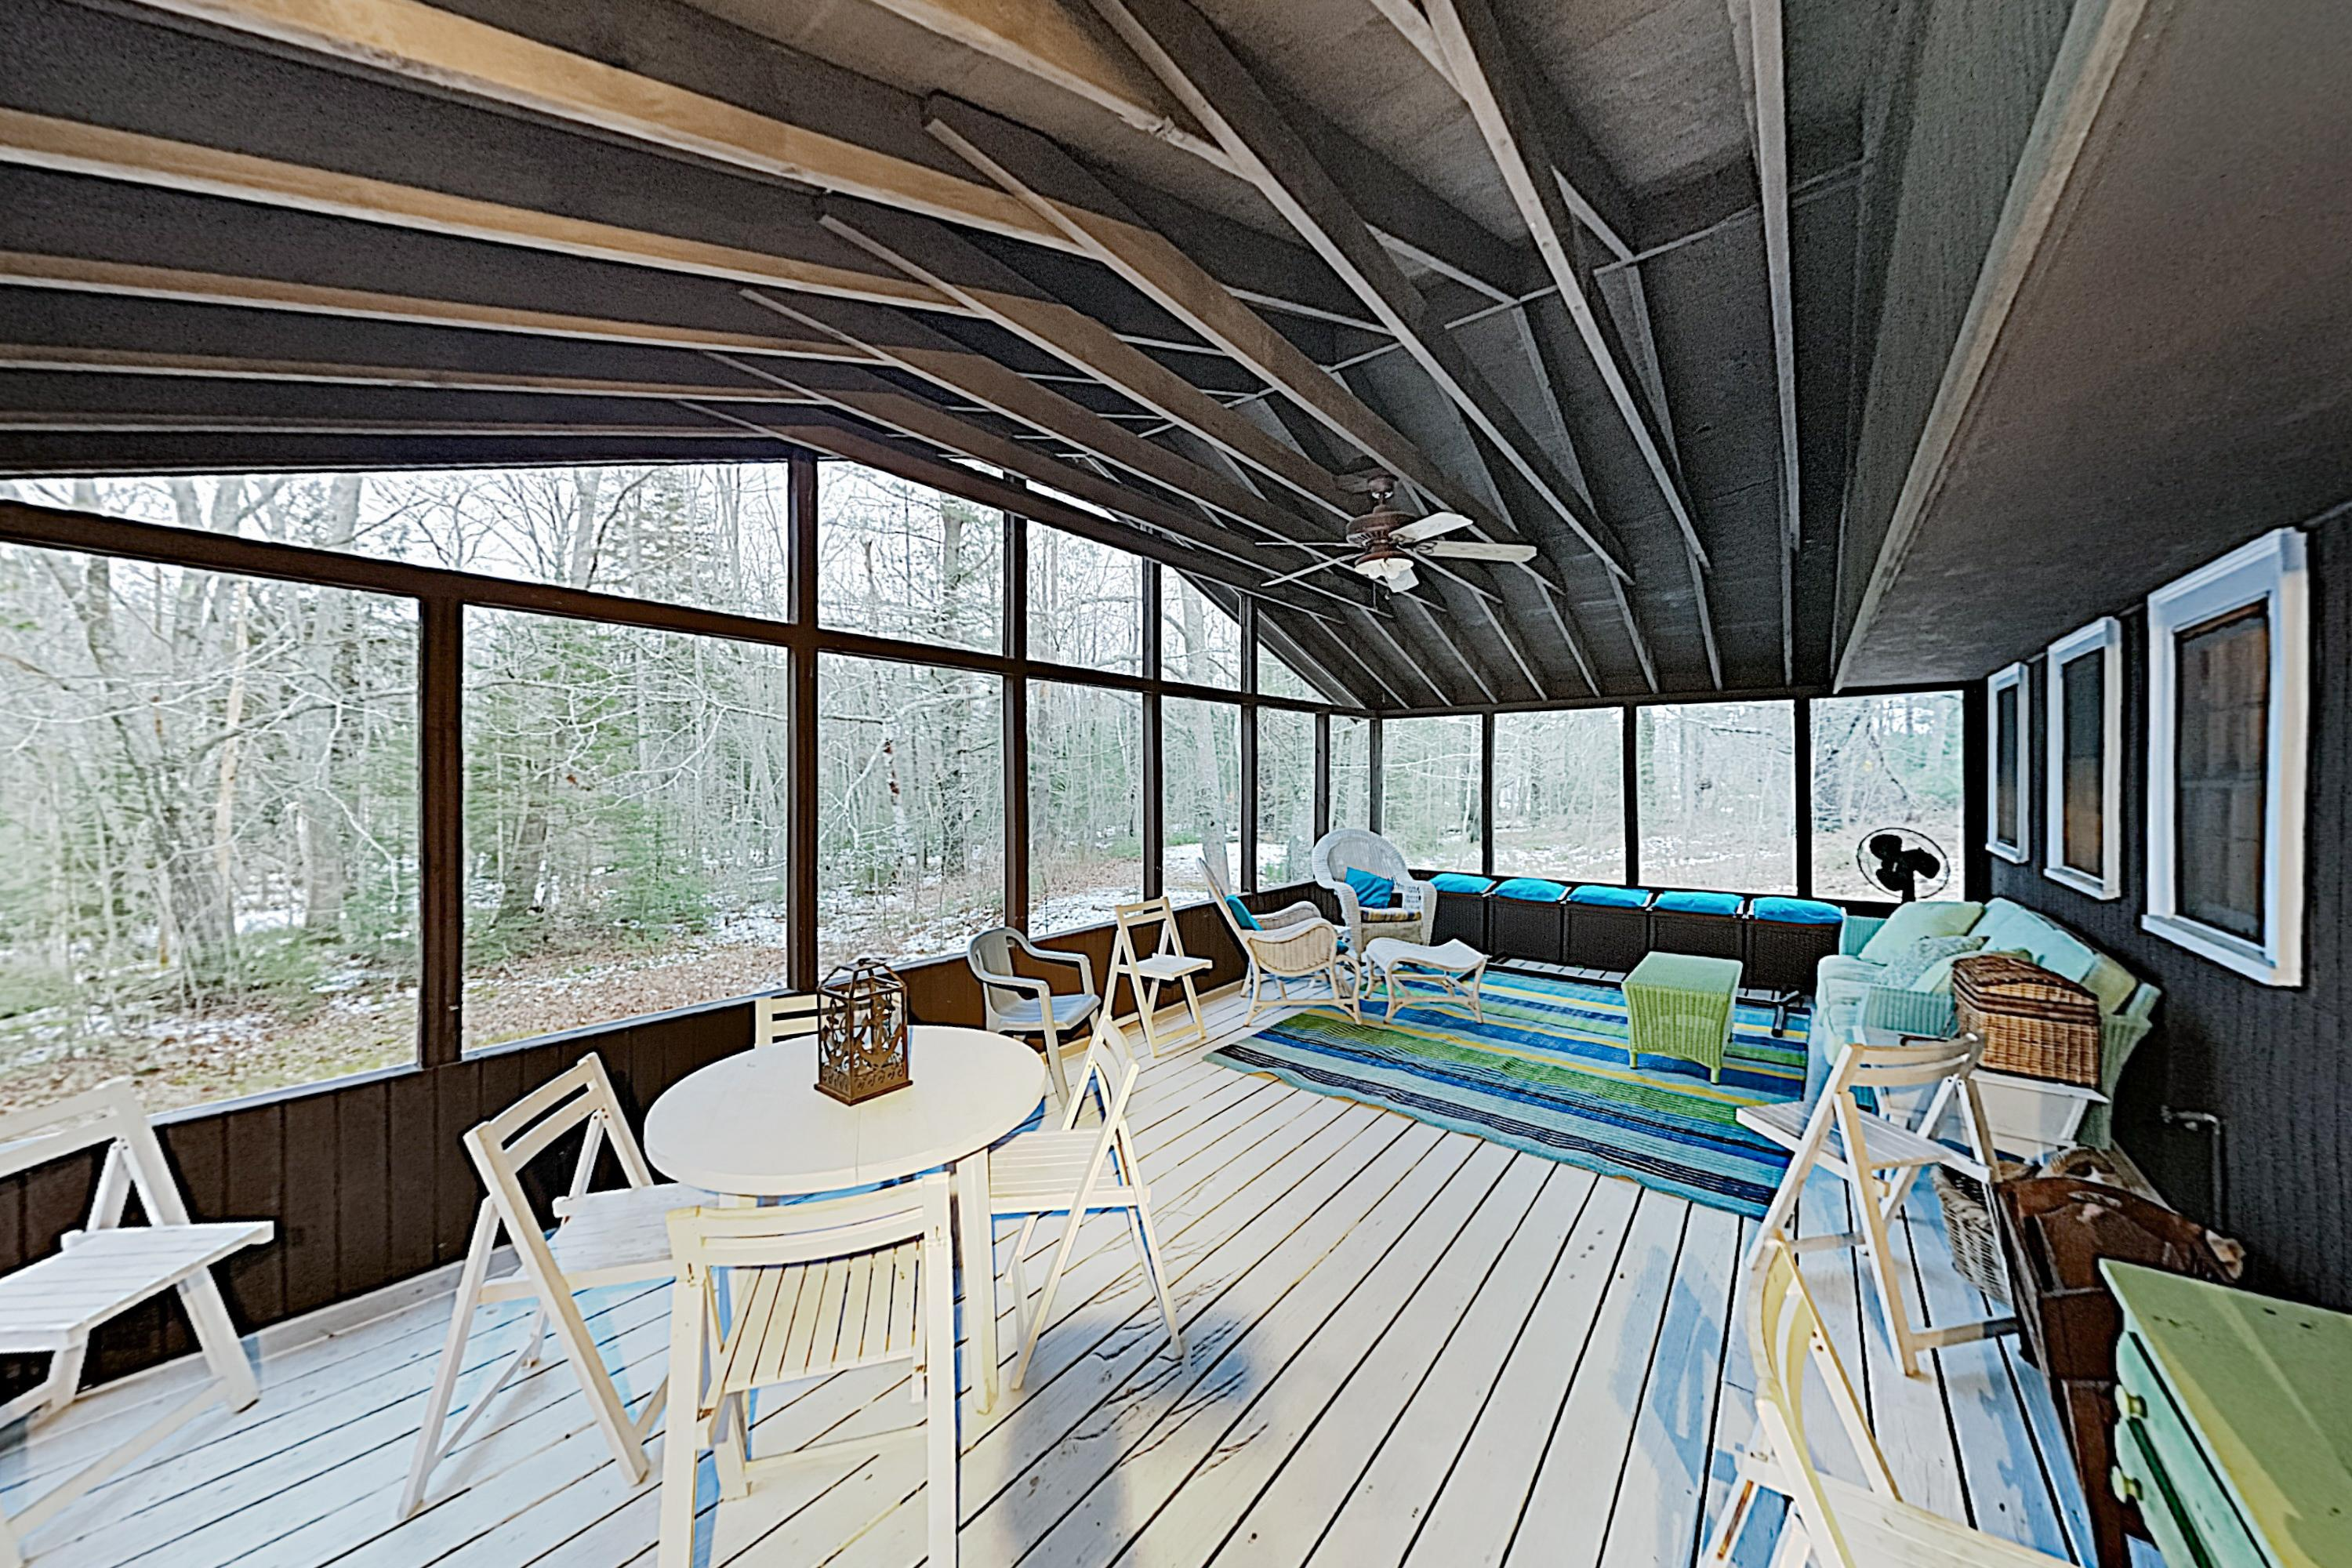 Enjoy the mild coastal climate on the screened porch.